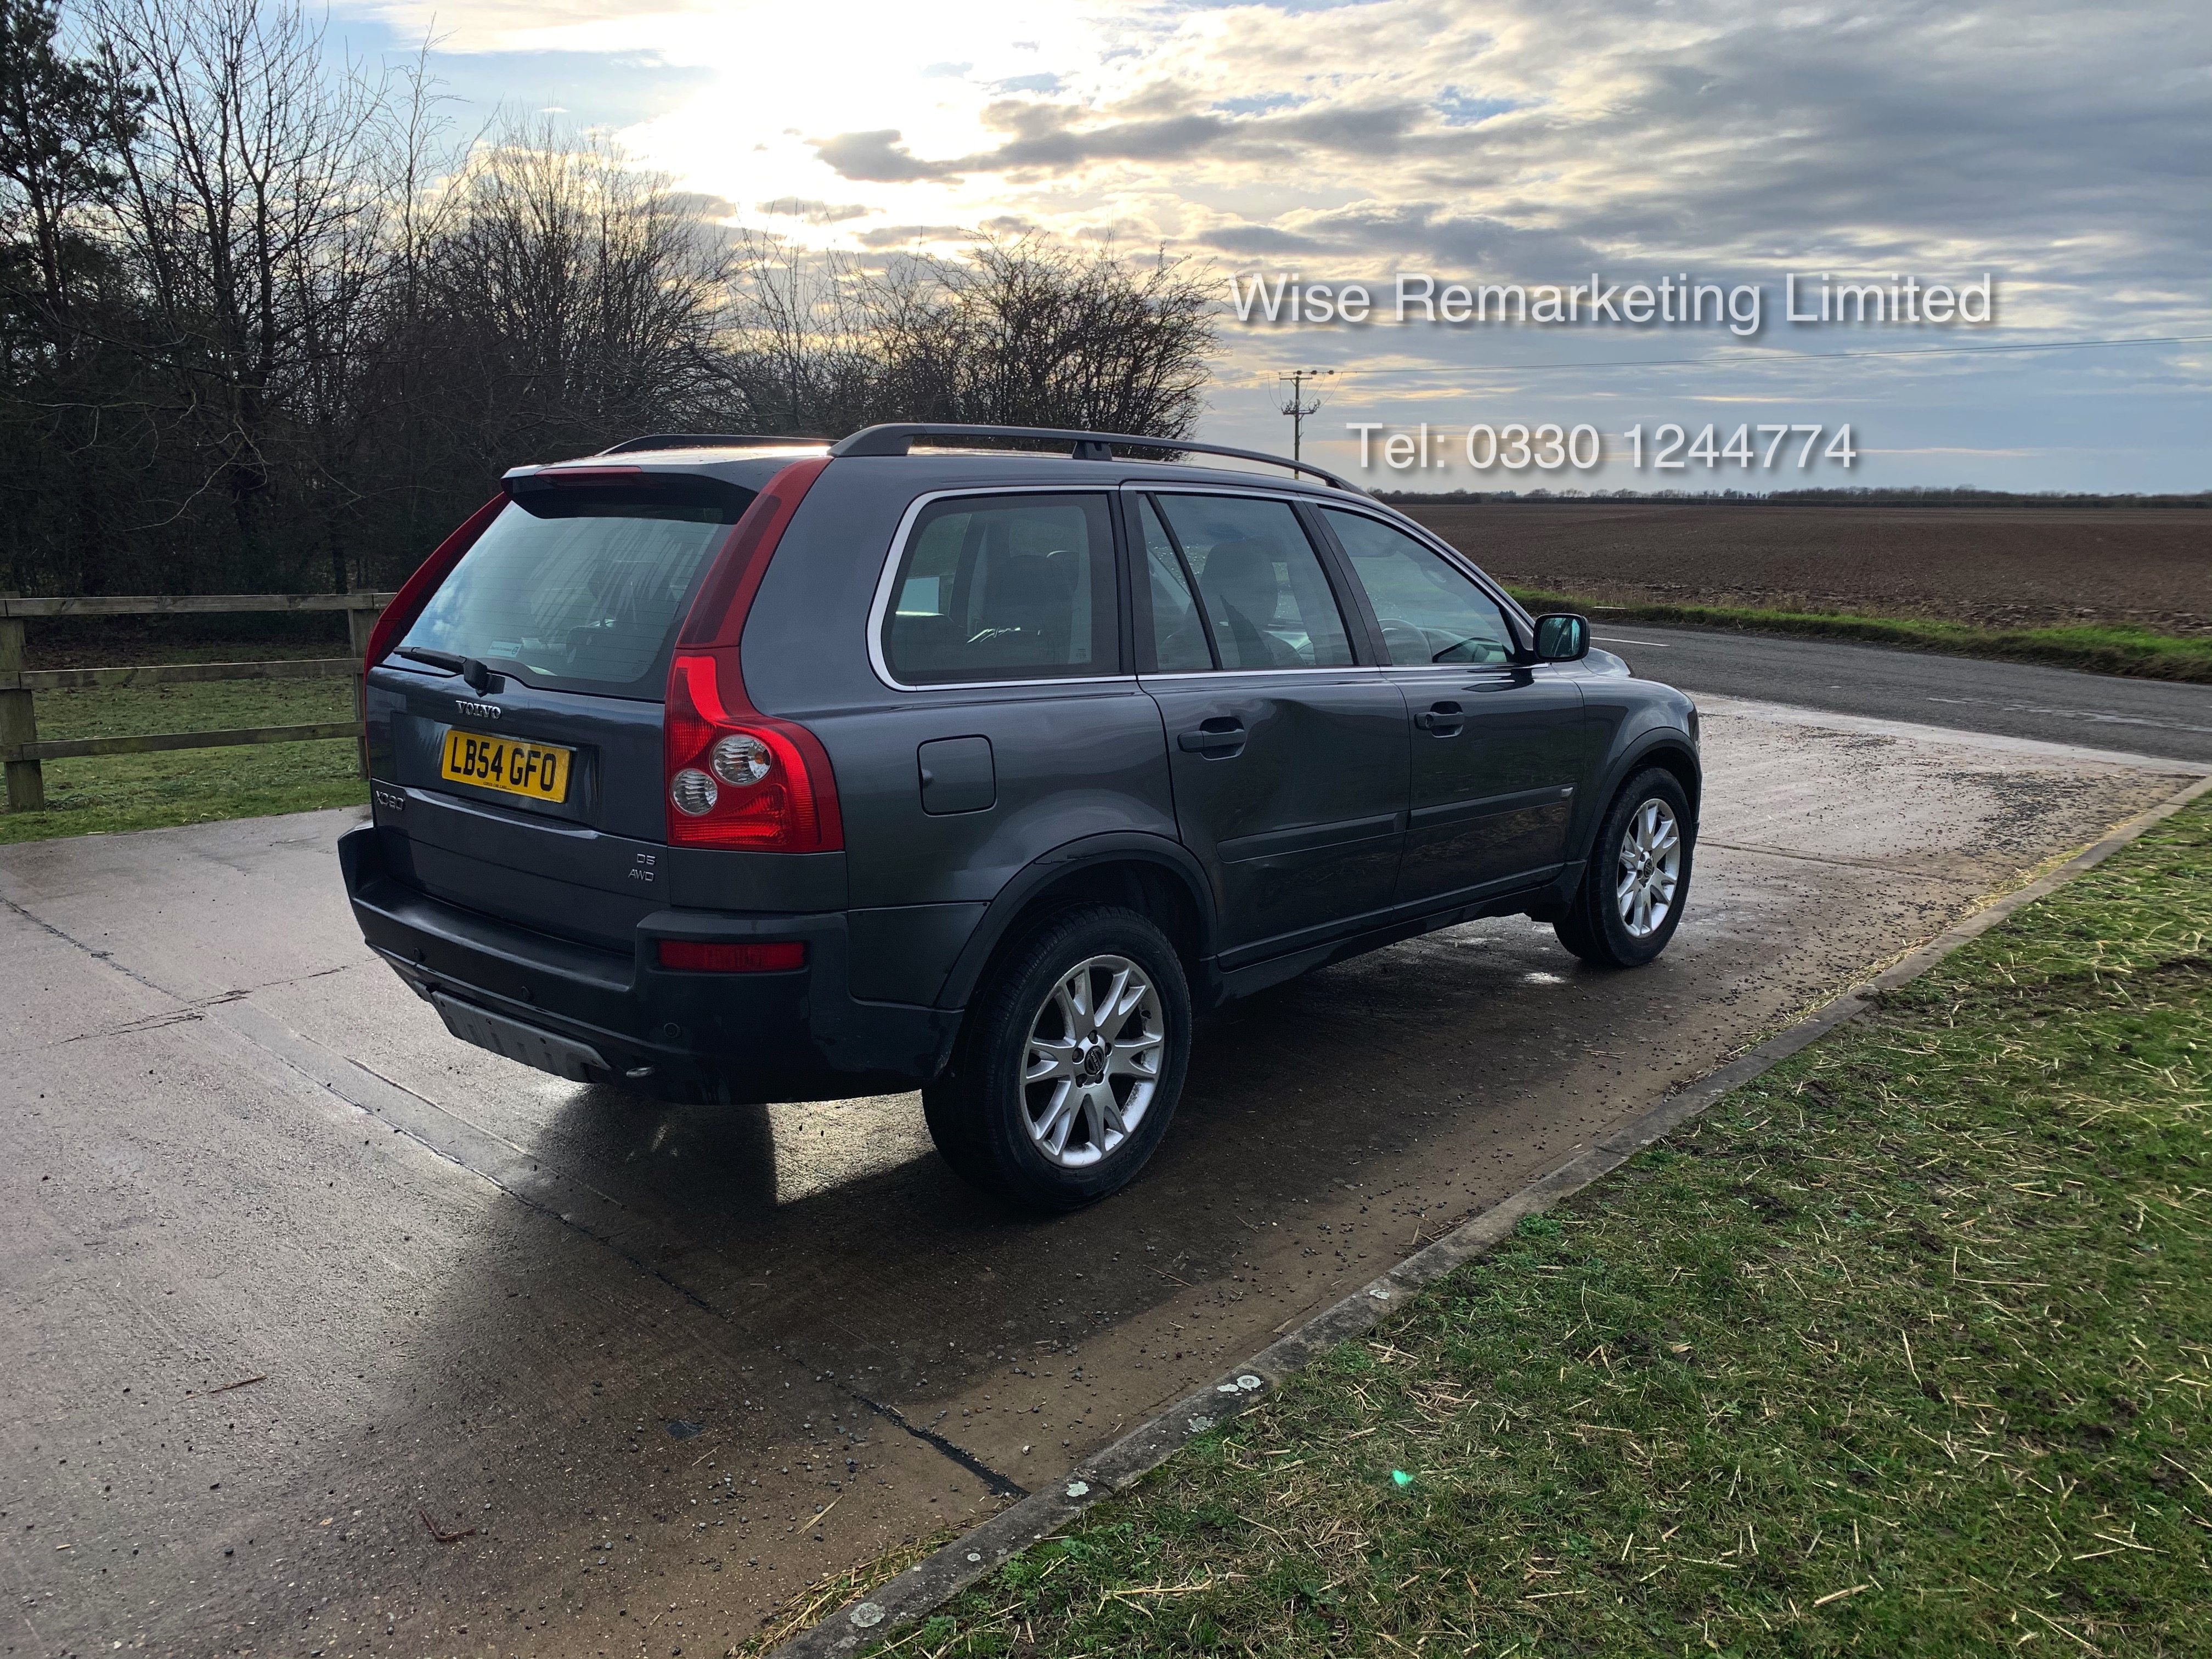 Volvo XC90 D5 2.4 Special Equipment Auto - 2005 Model - 7 Seater - Full Leather - - Image 3 of 21